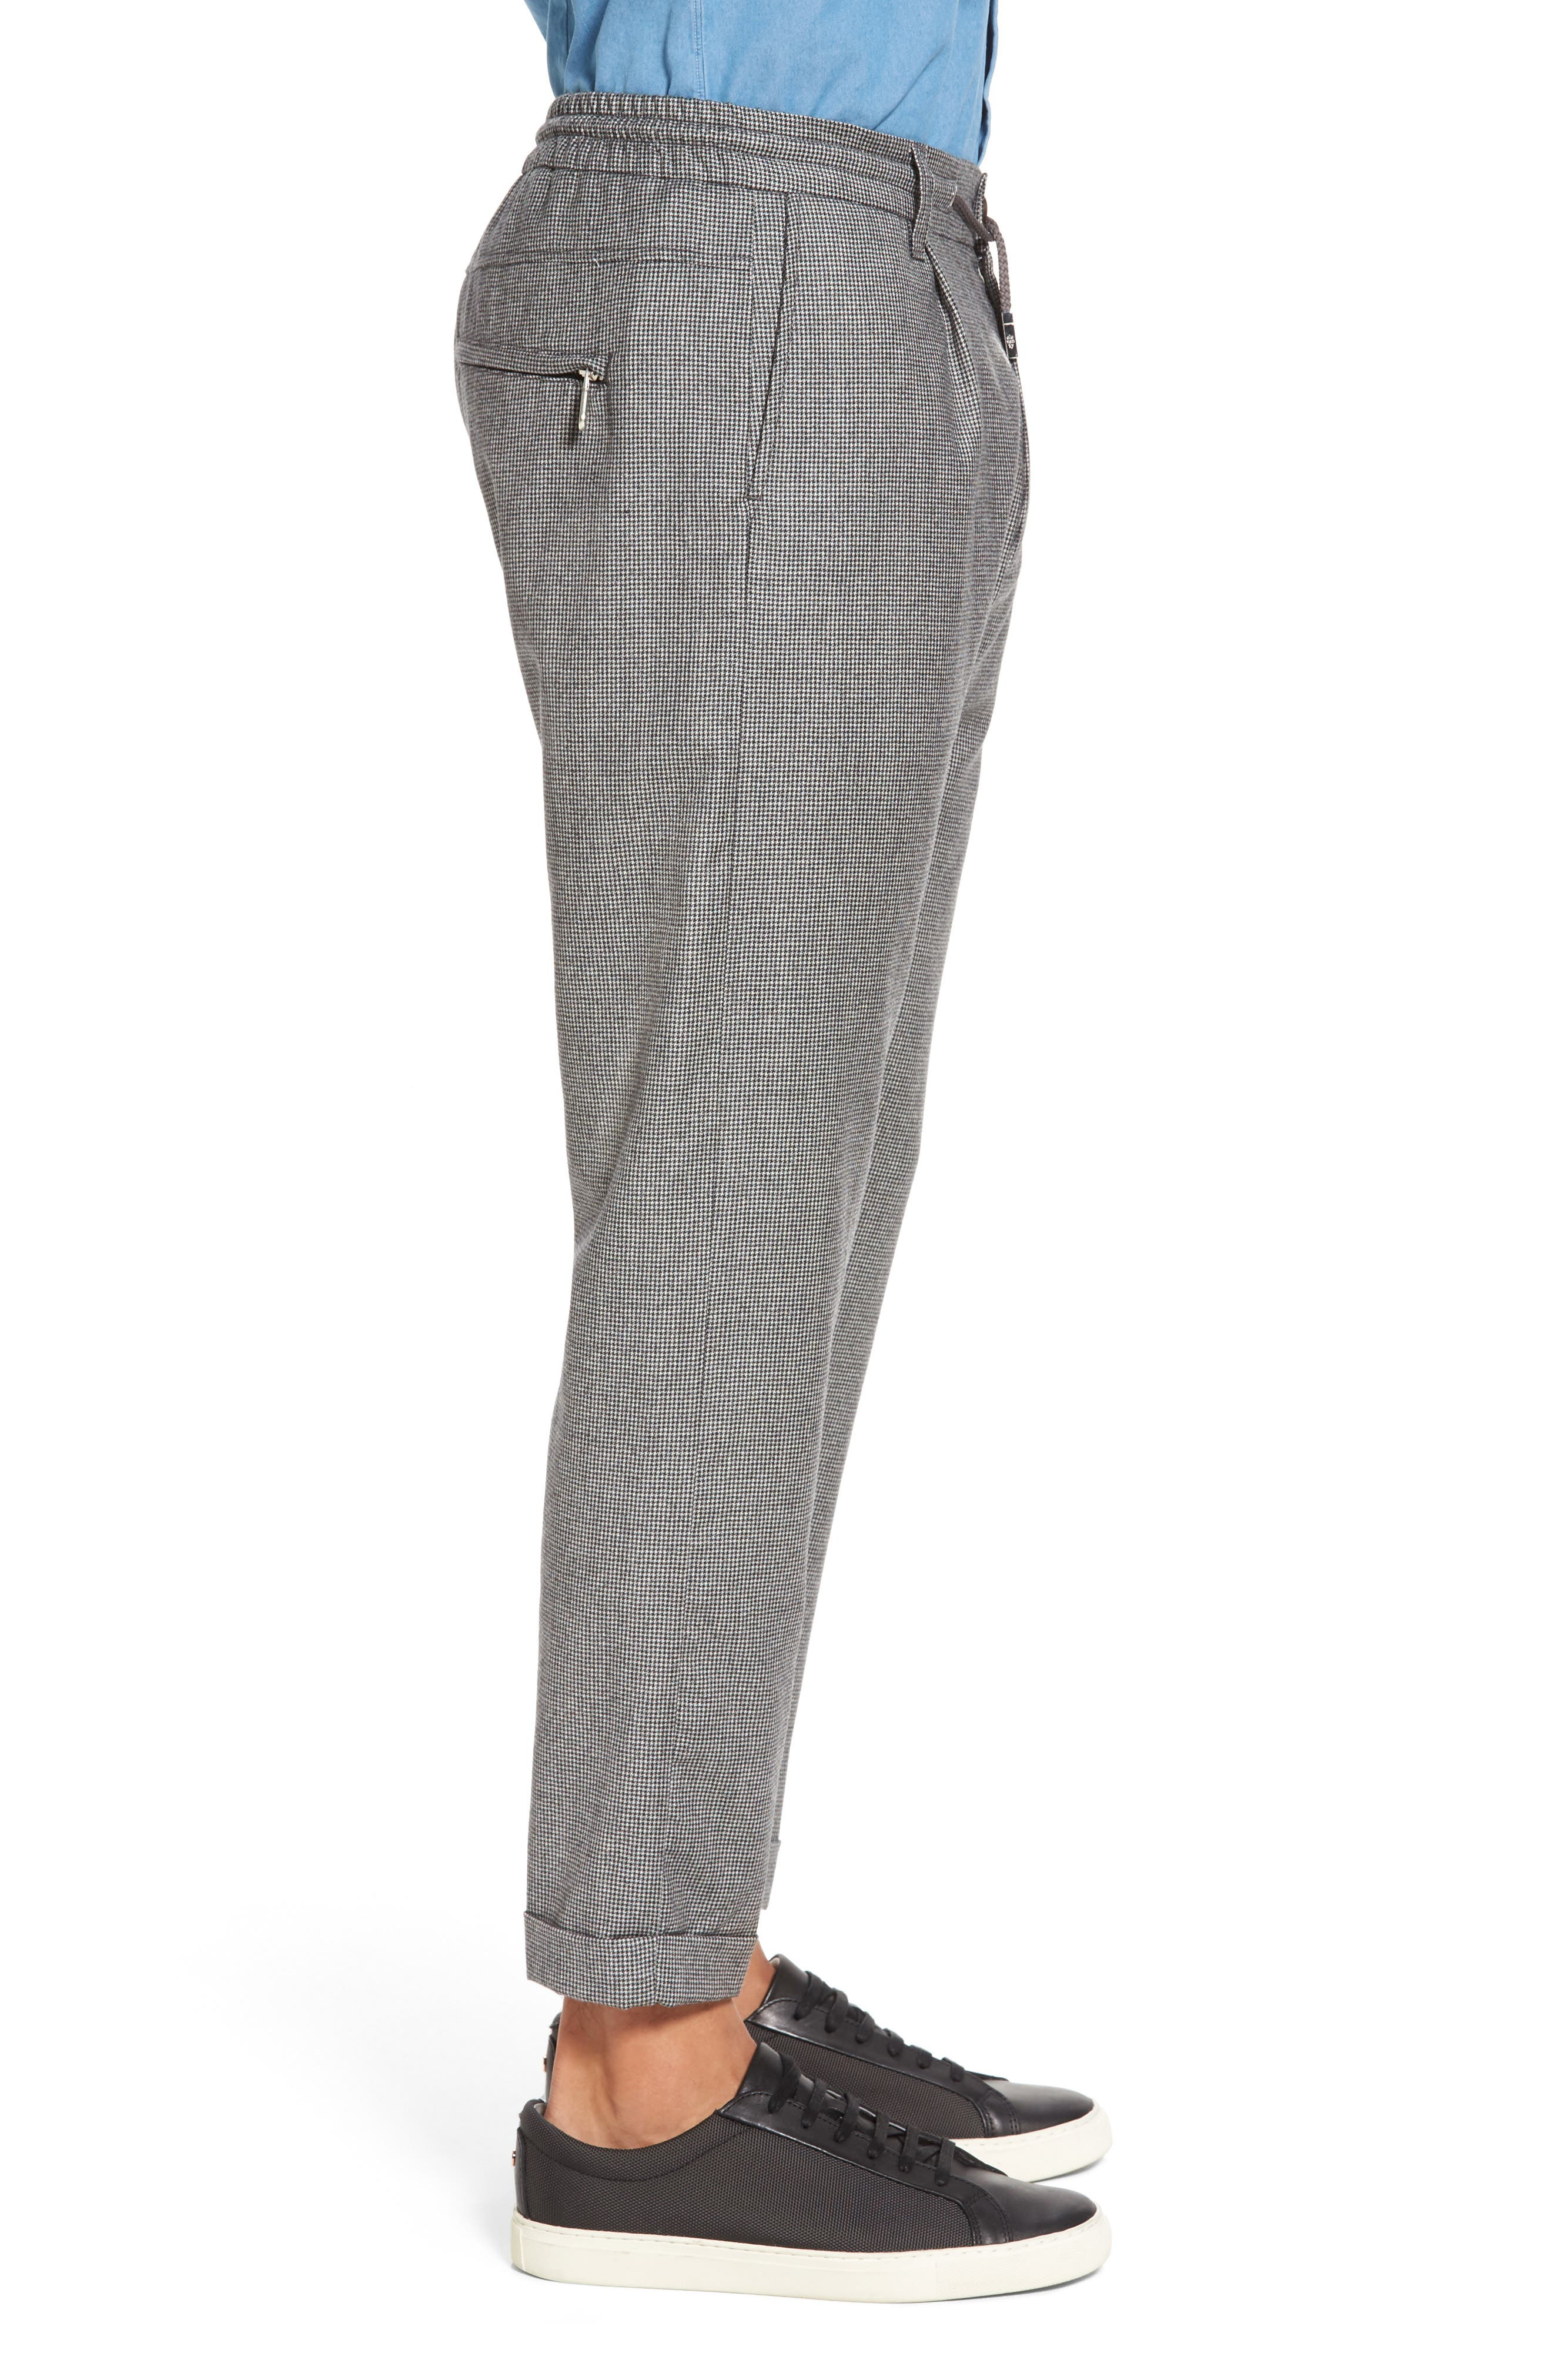 Alternate Image 3  - Eleventy Houndstooth Wool Drawstring Jogger Pants